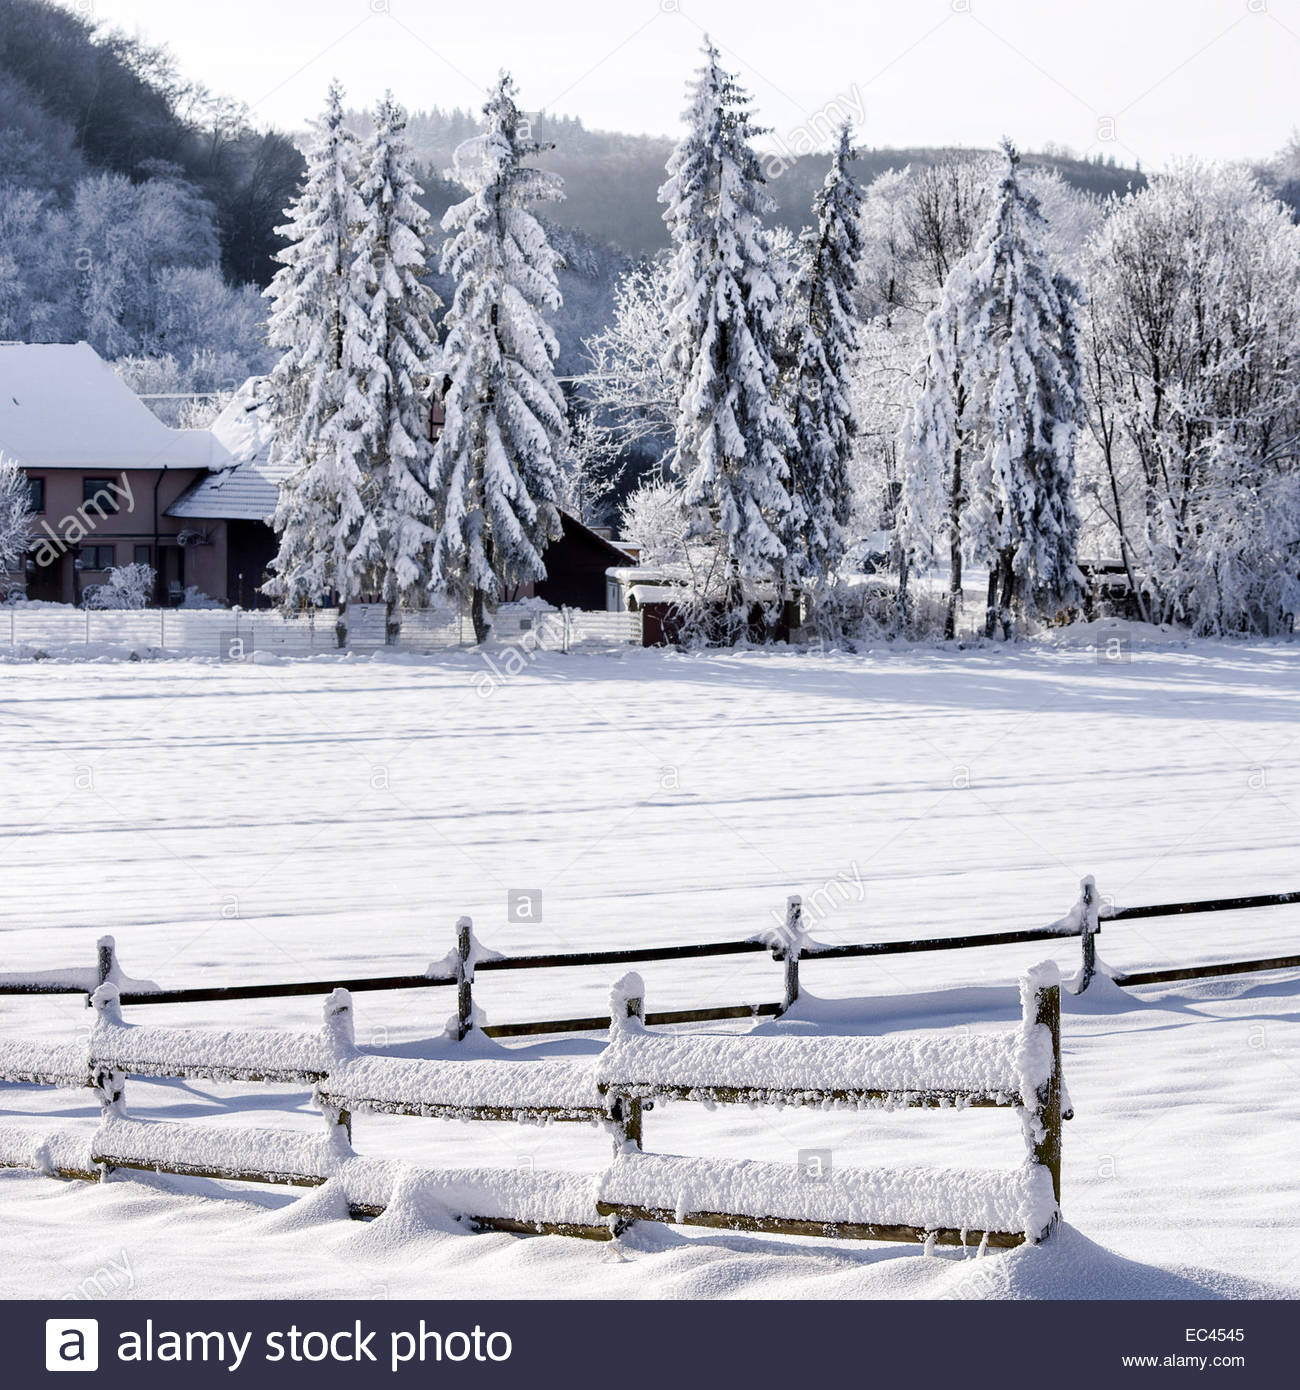 Snowed-in fence in wintery environment. - Stock Image